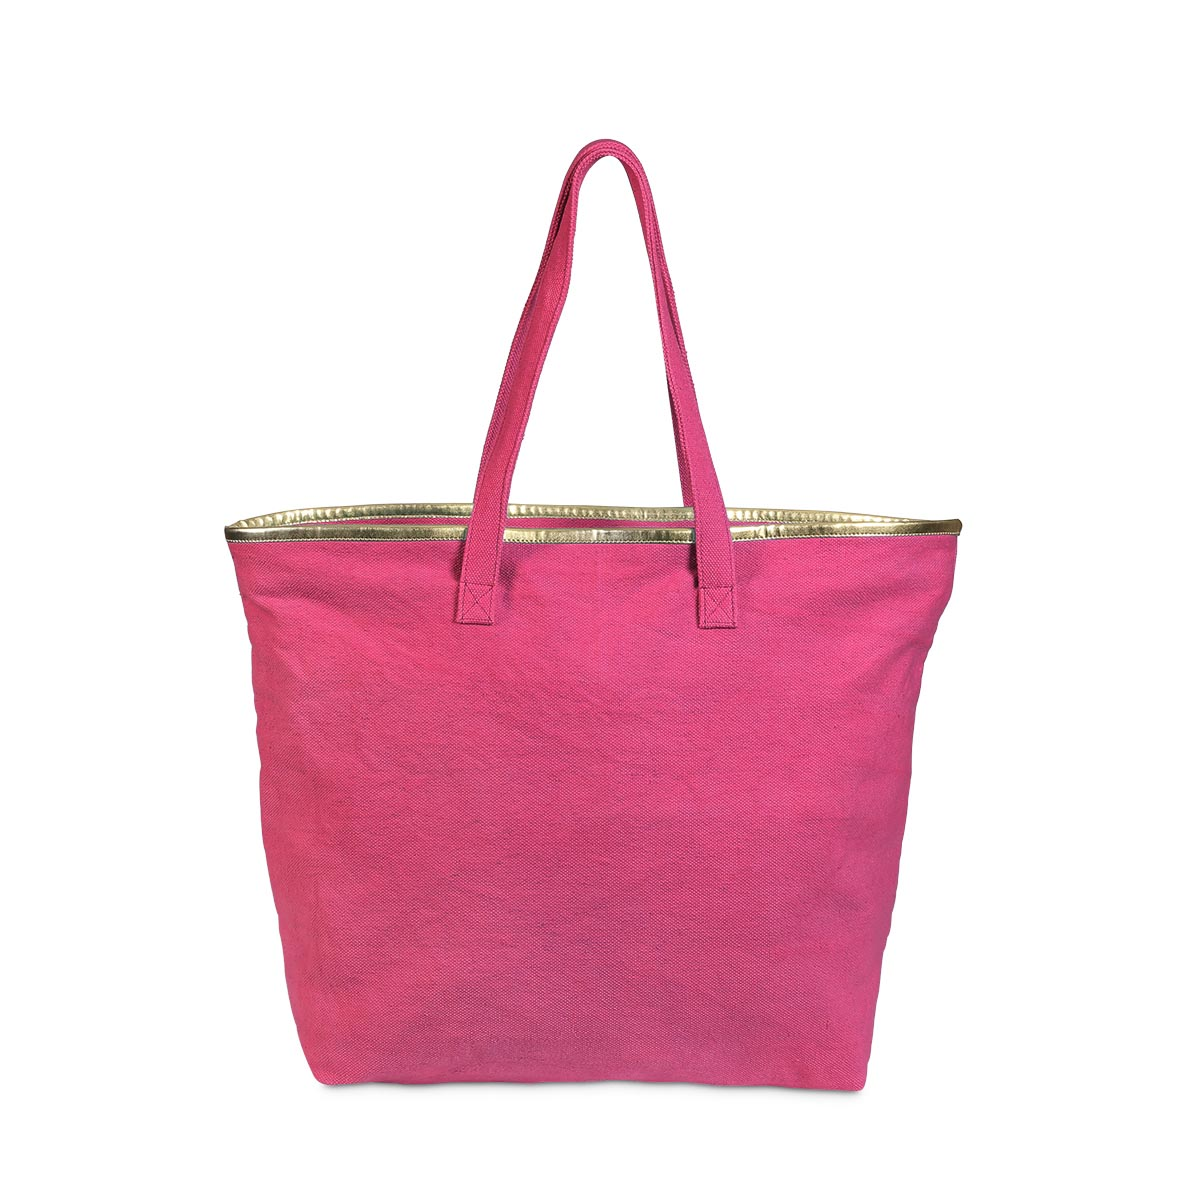 total tote pink, gold trim